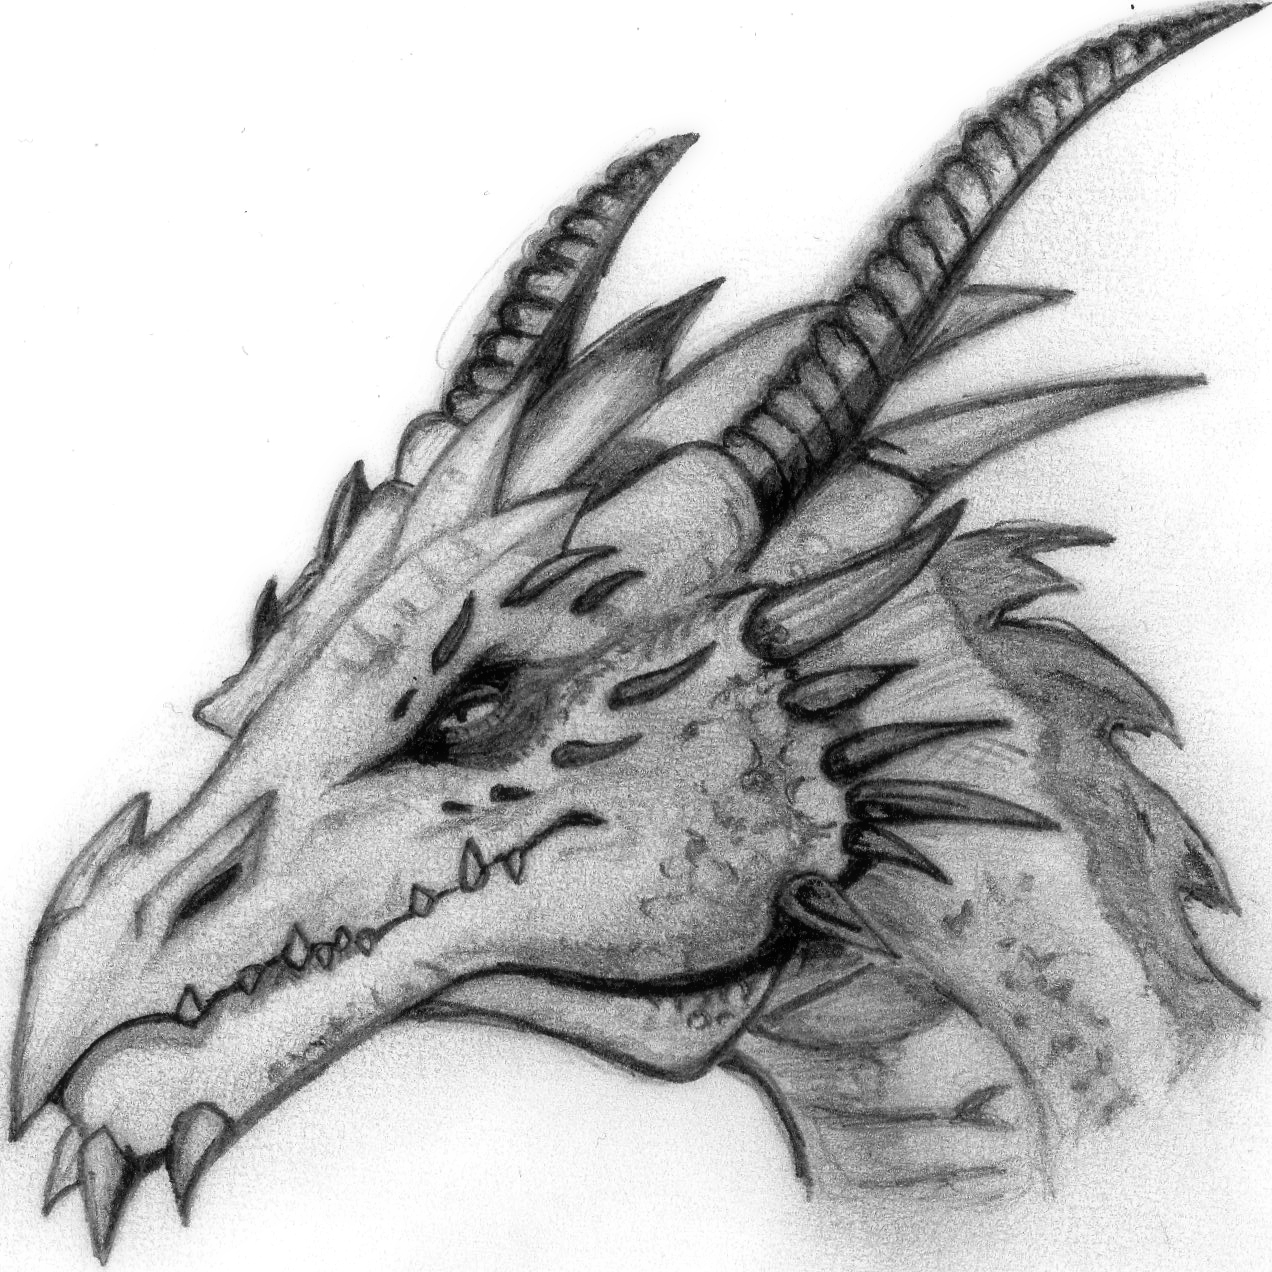 Dragon head by deathlouis on deviantart for Small art drawings